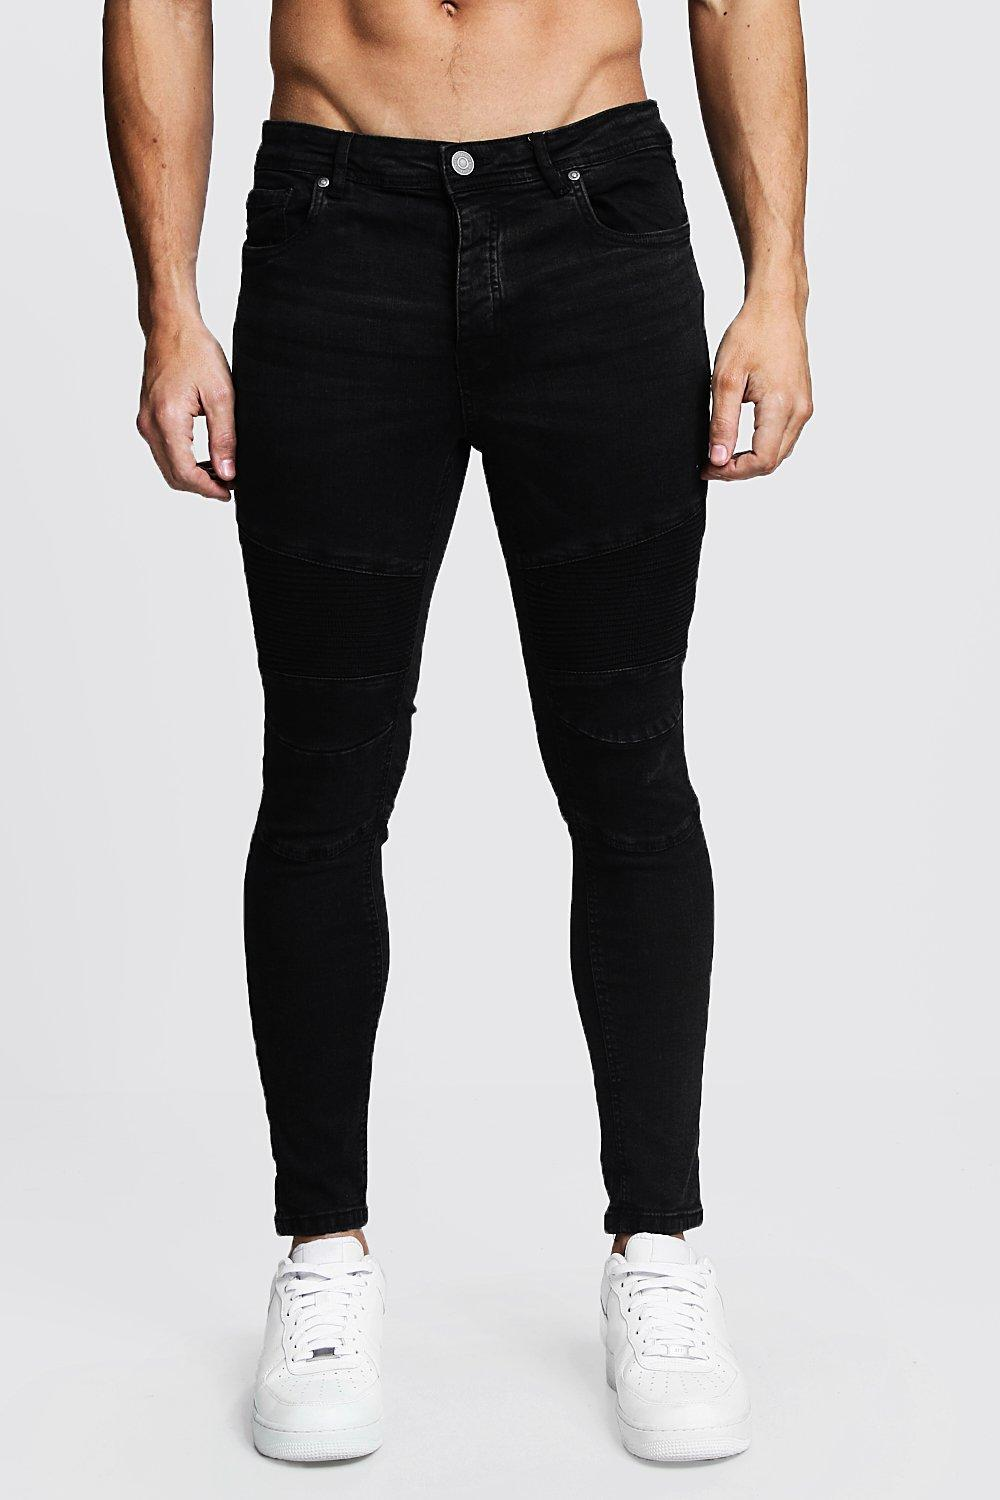 Charcoal Wash Skinny Fit Biker Jeans